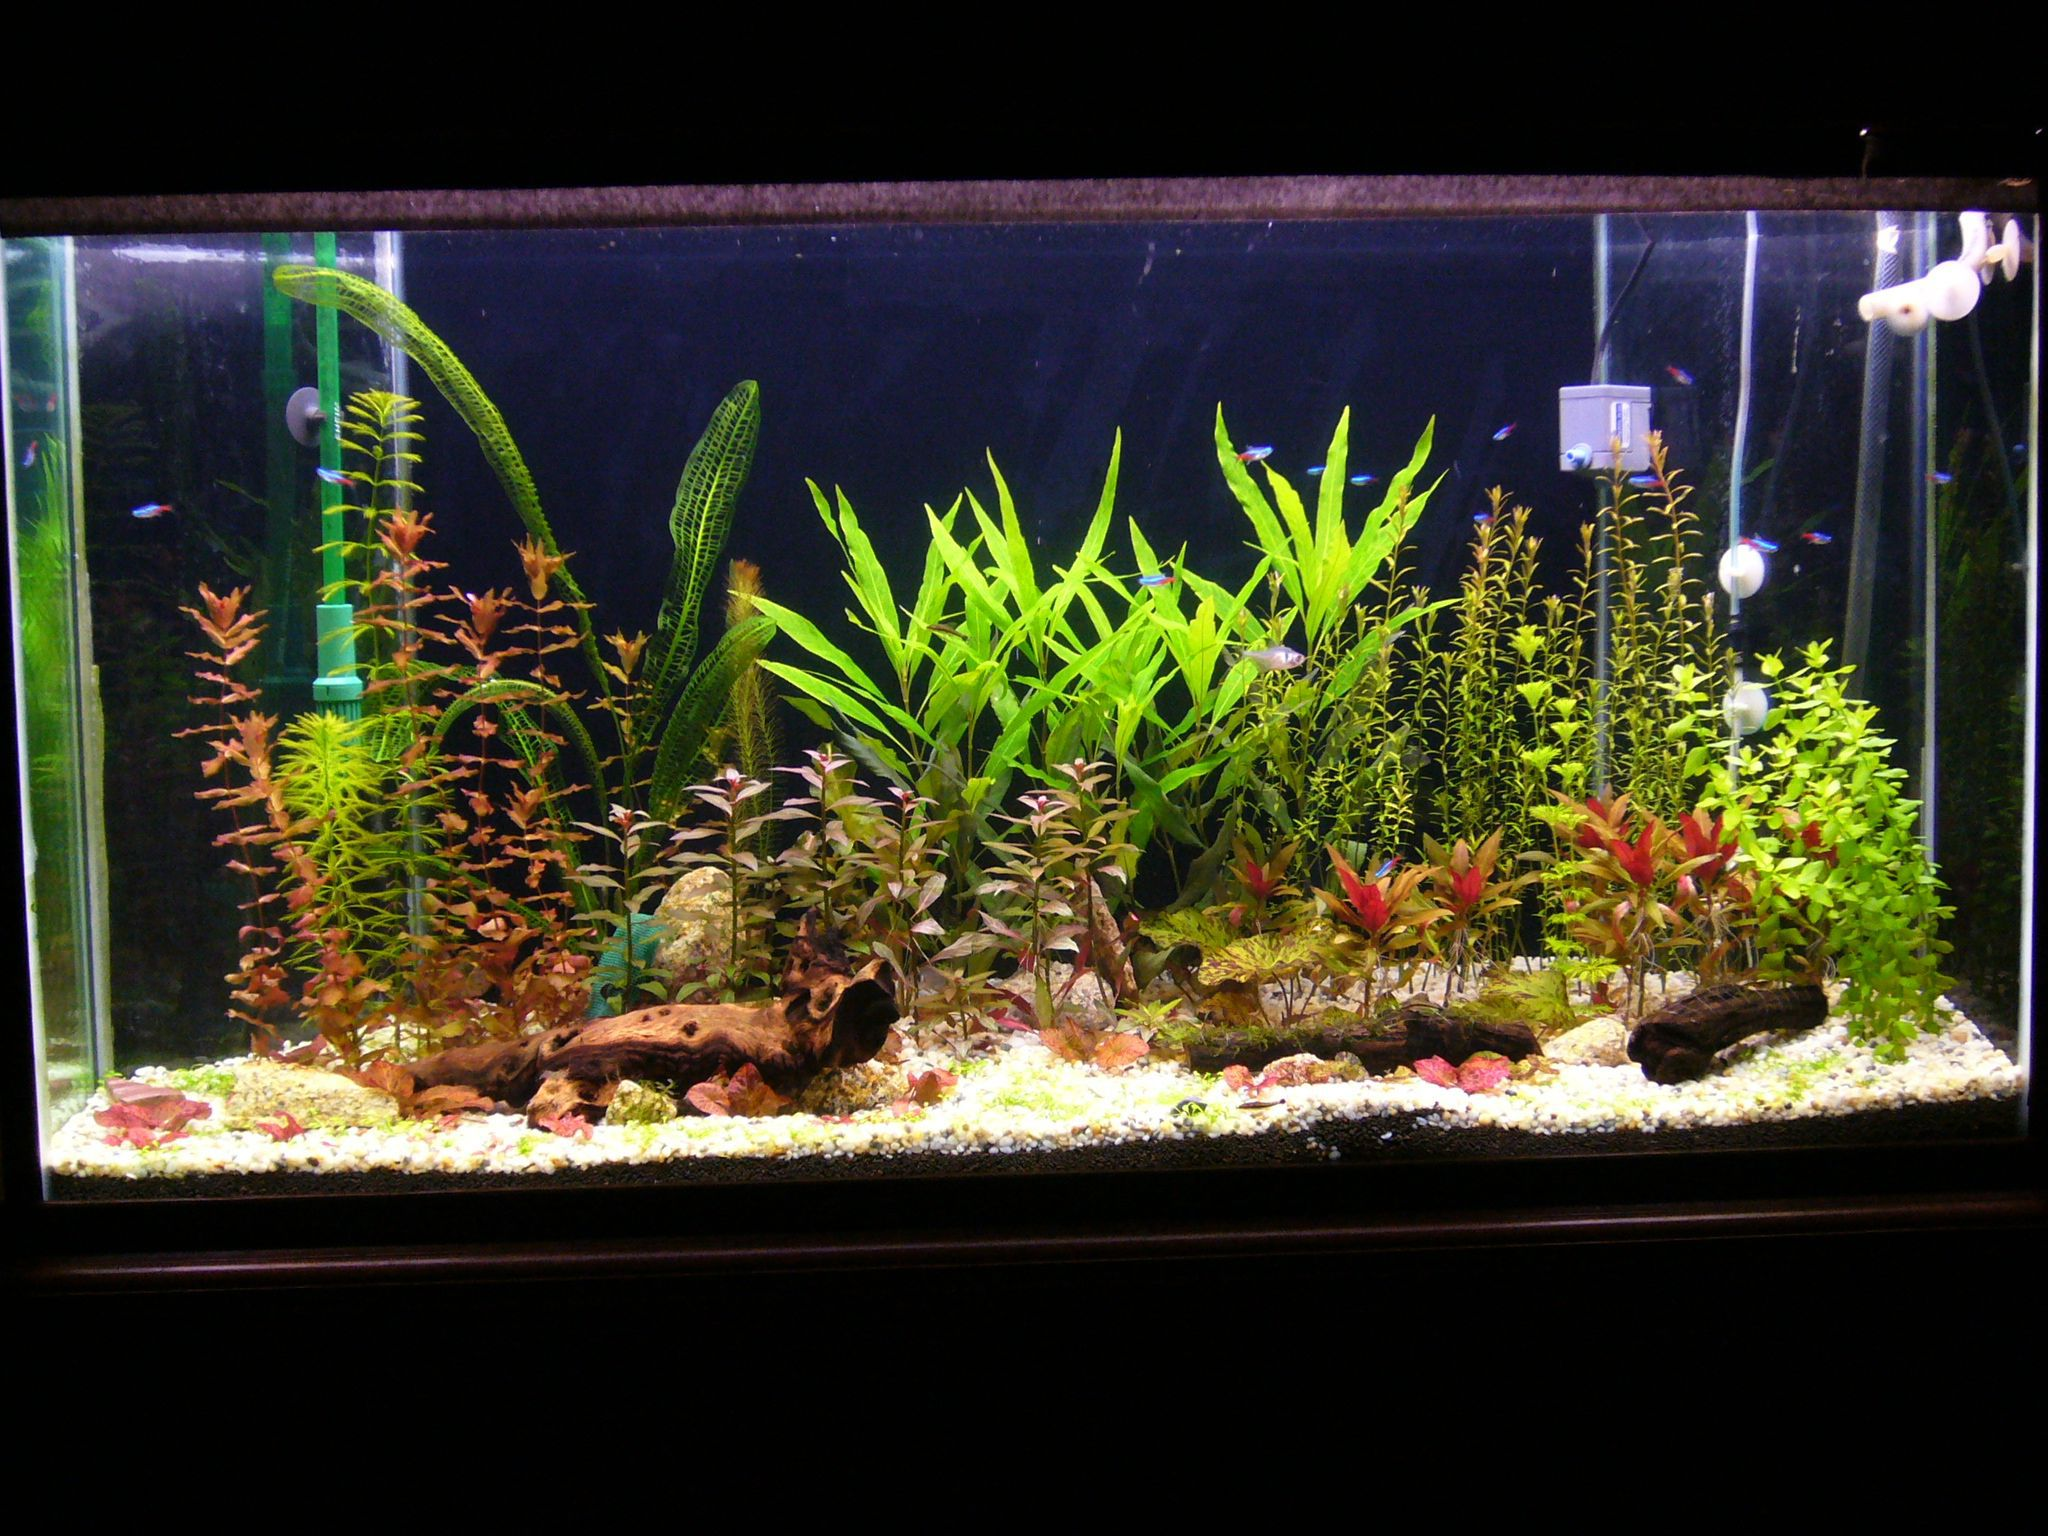 aquarium plants real or artificial